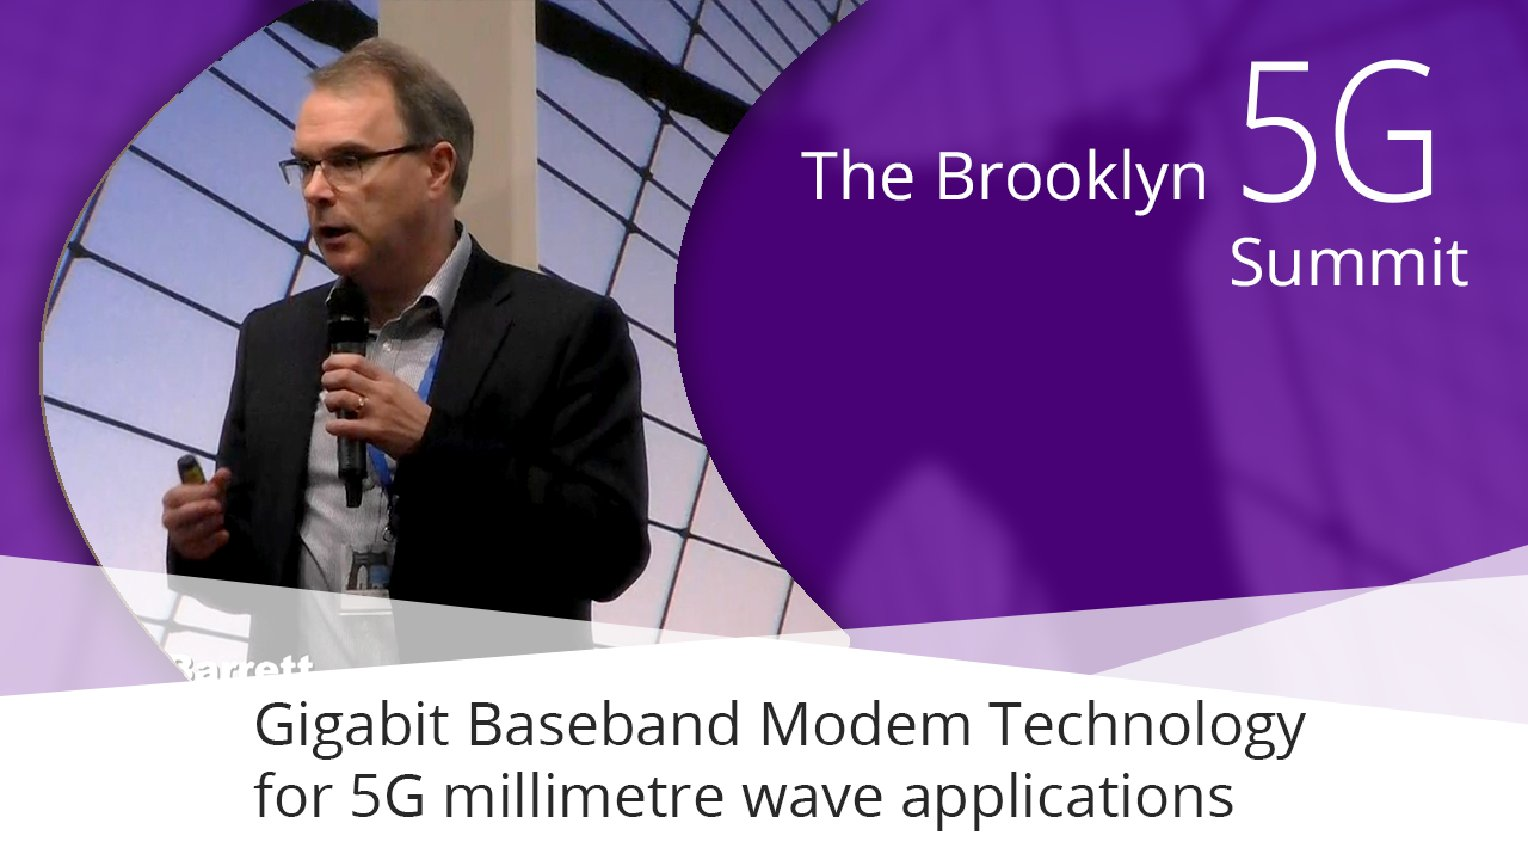 Gigabit Baseband Modem Technology for 5G millimetre wave applications - Mark Barrett: Brooklyn 5G Summit 2017